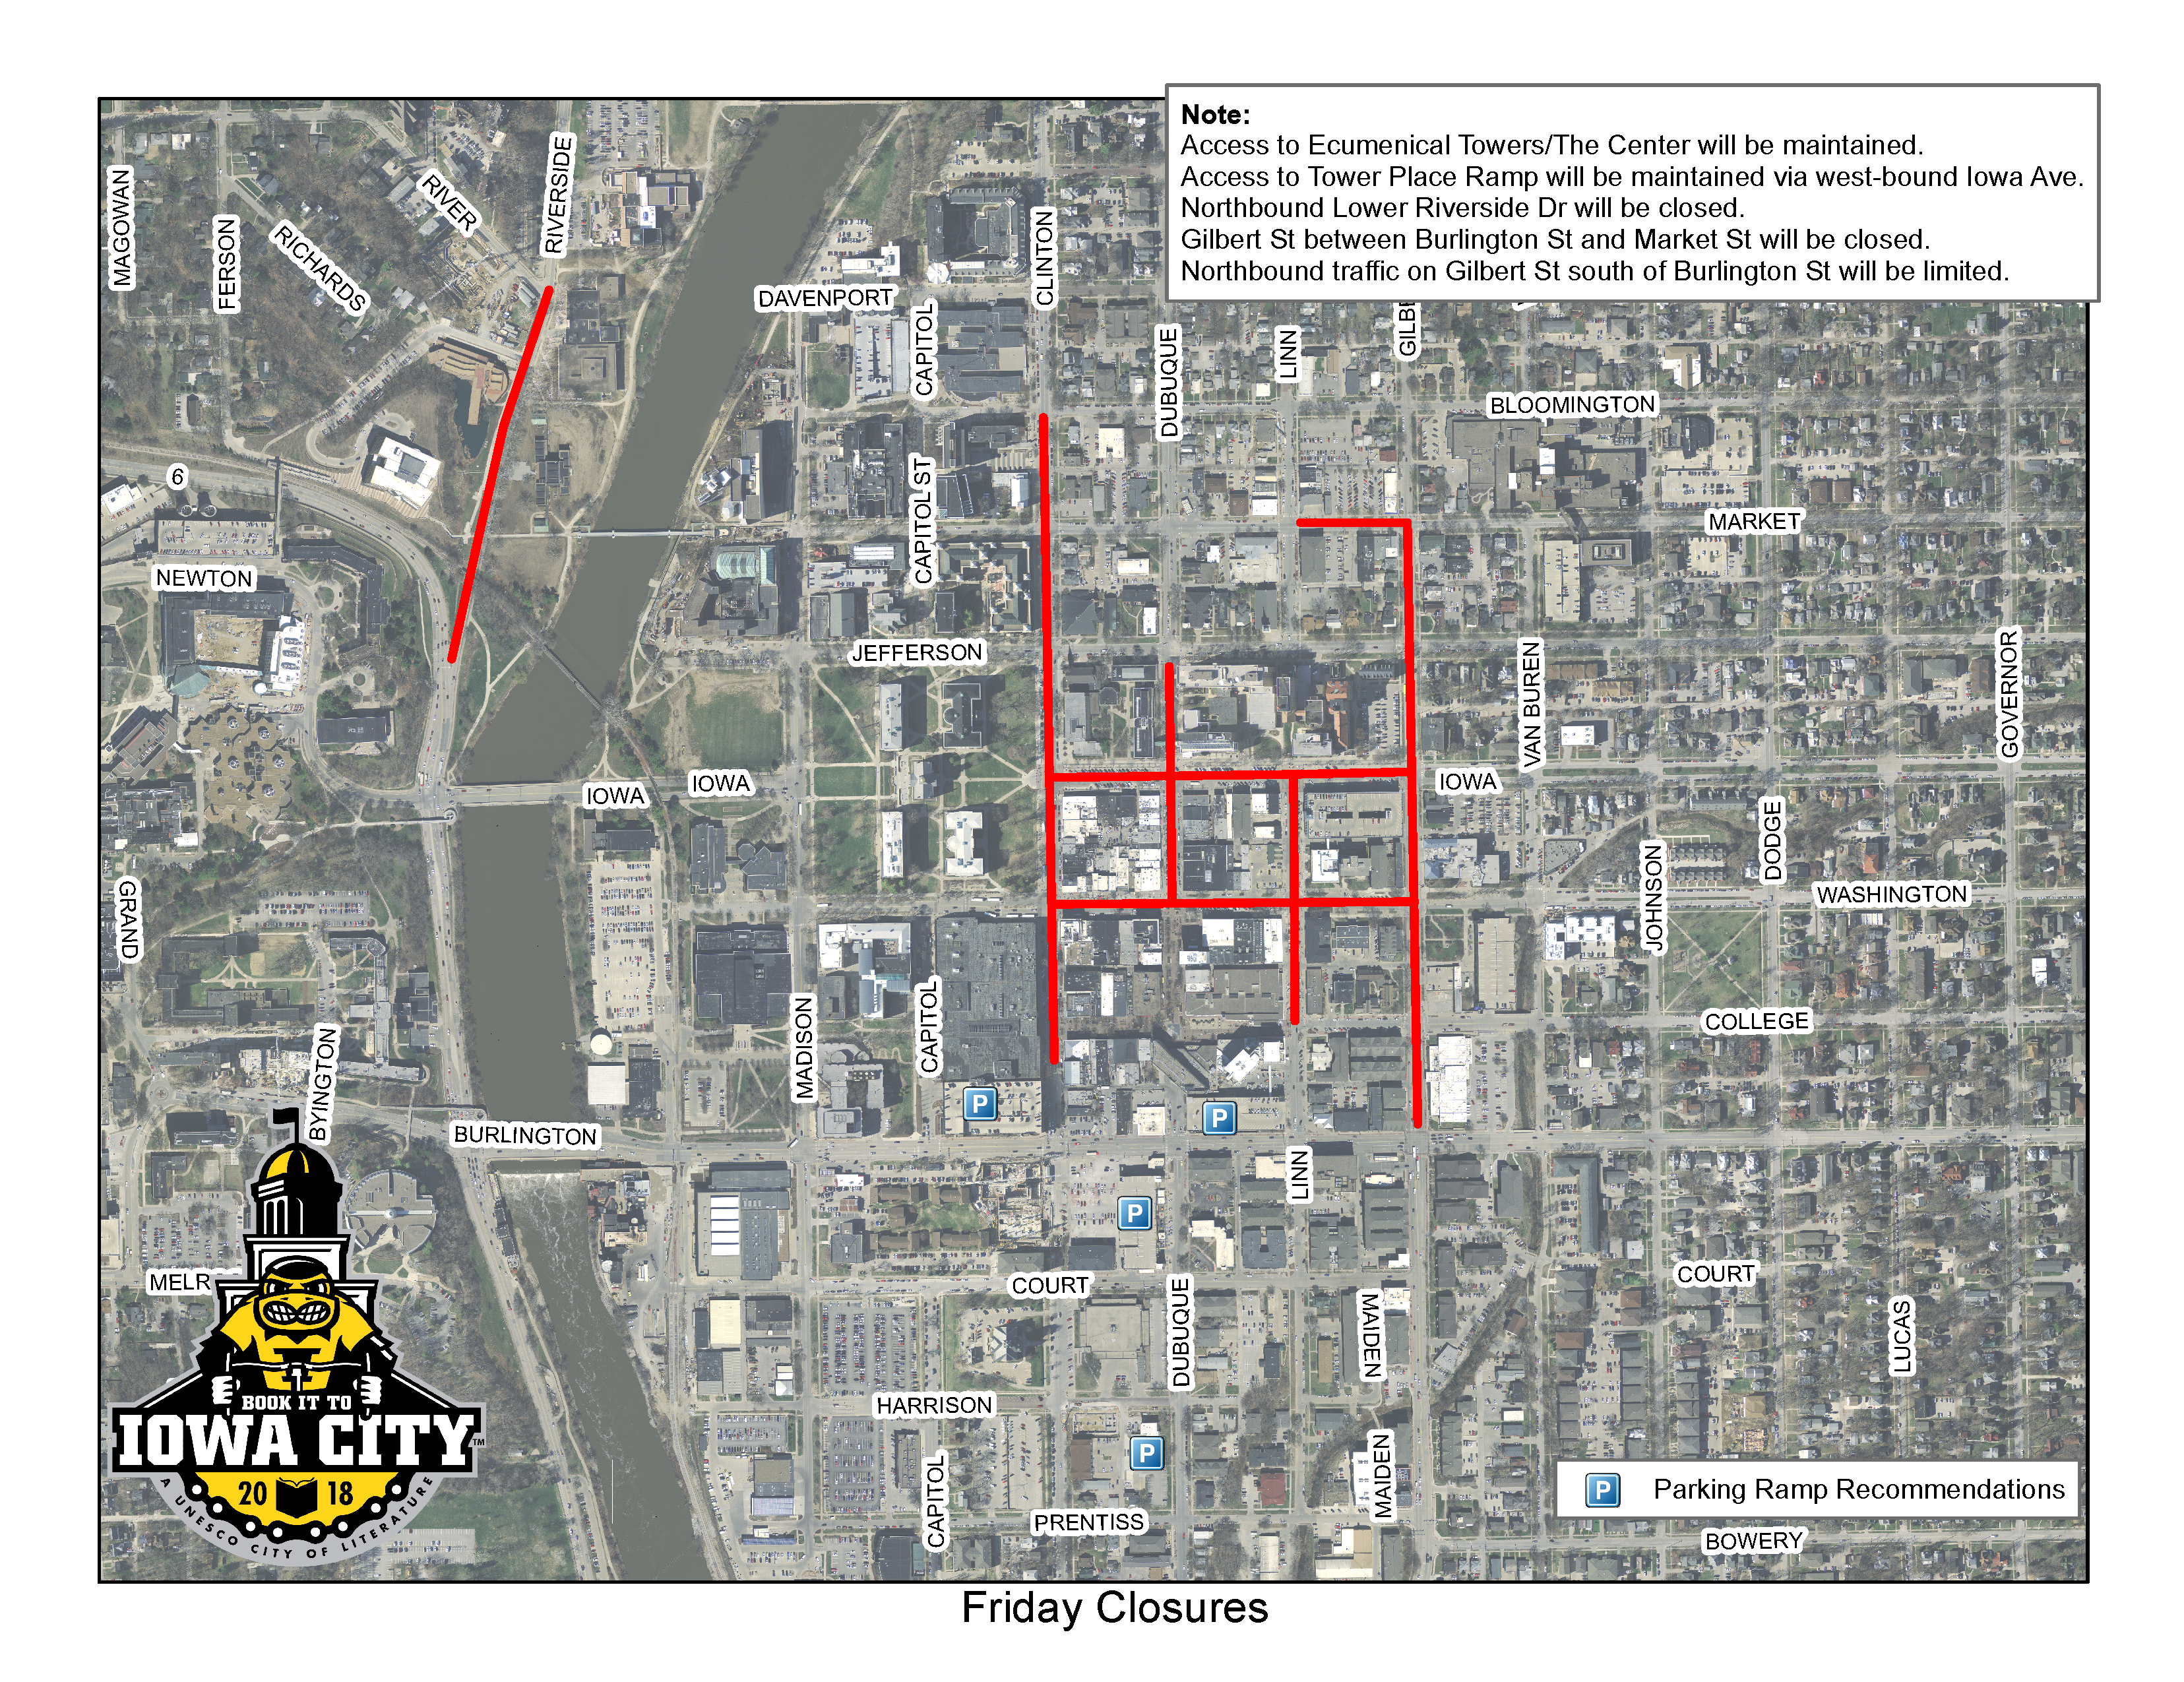 A map of the July 27 street closures for Iowa City RAGBRAI